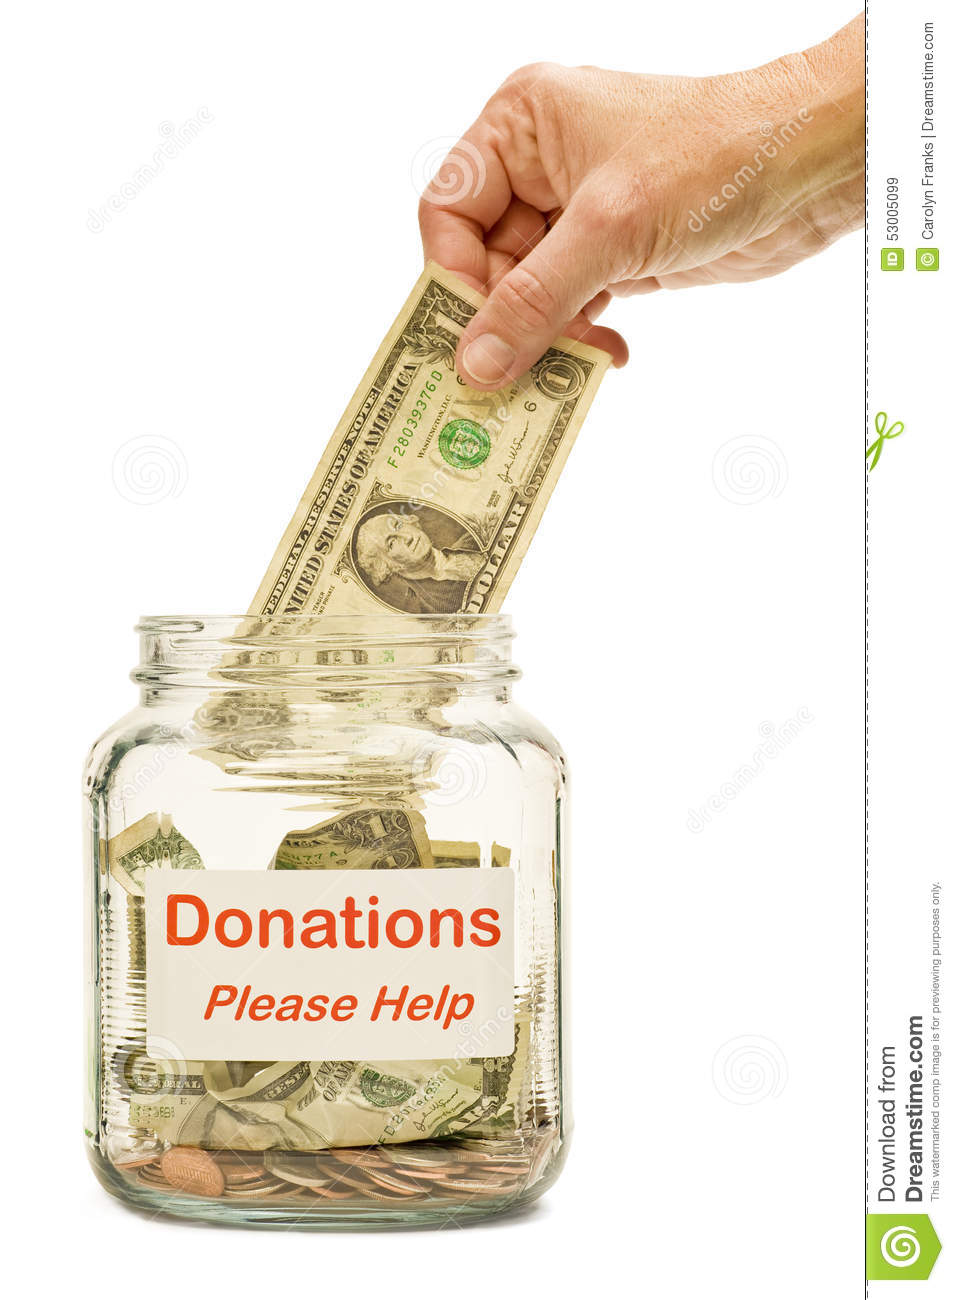 Making A Donation Stock Image Image Of Ideas Relief 53005099